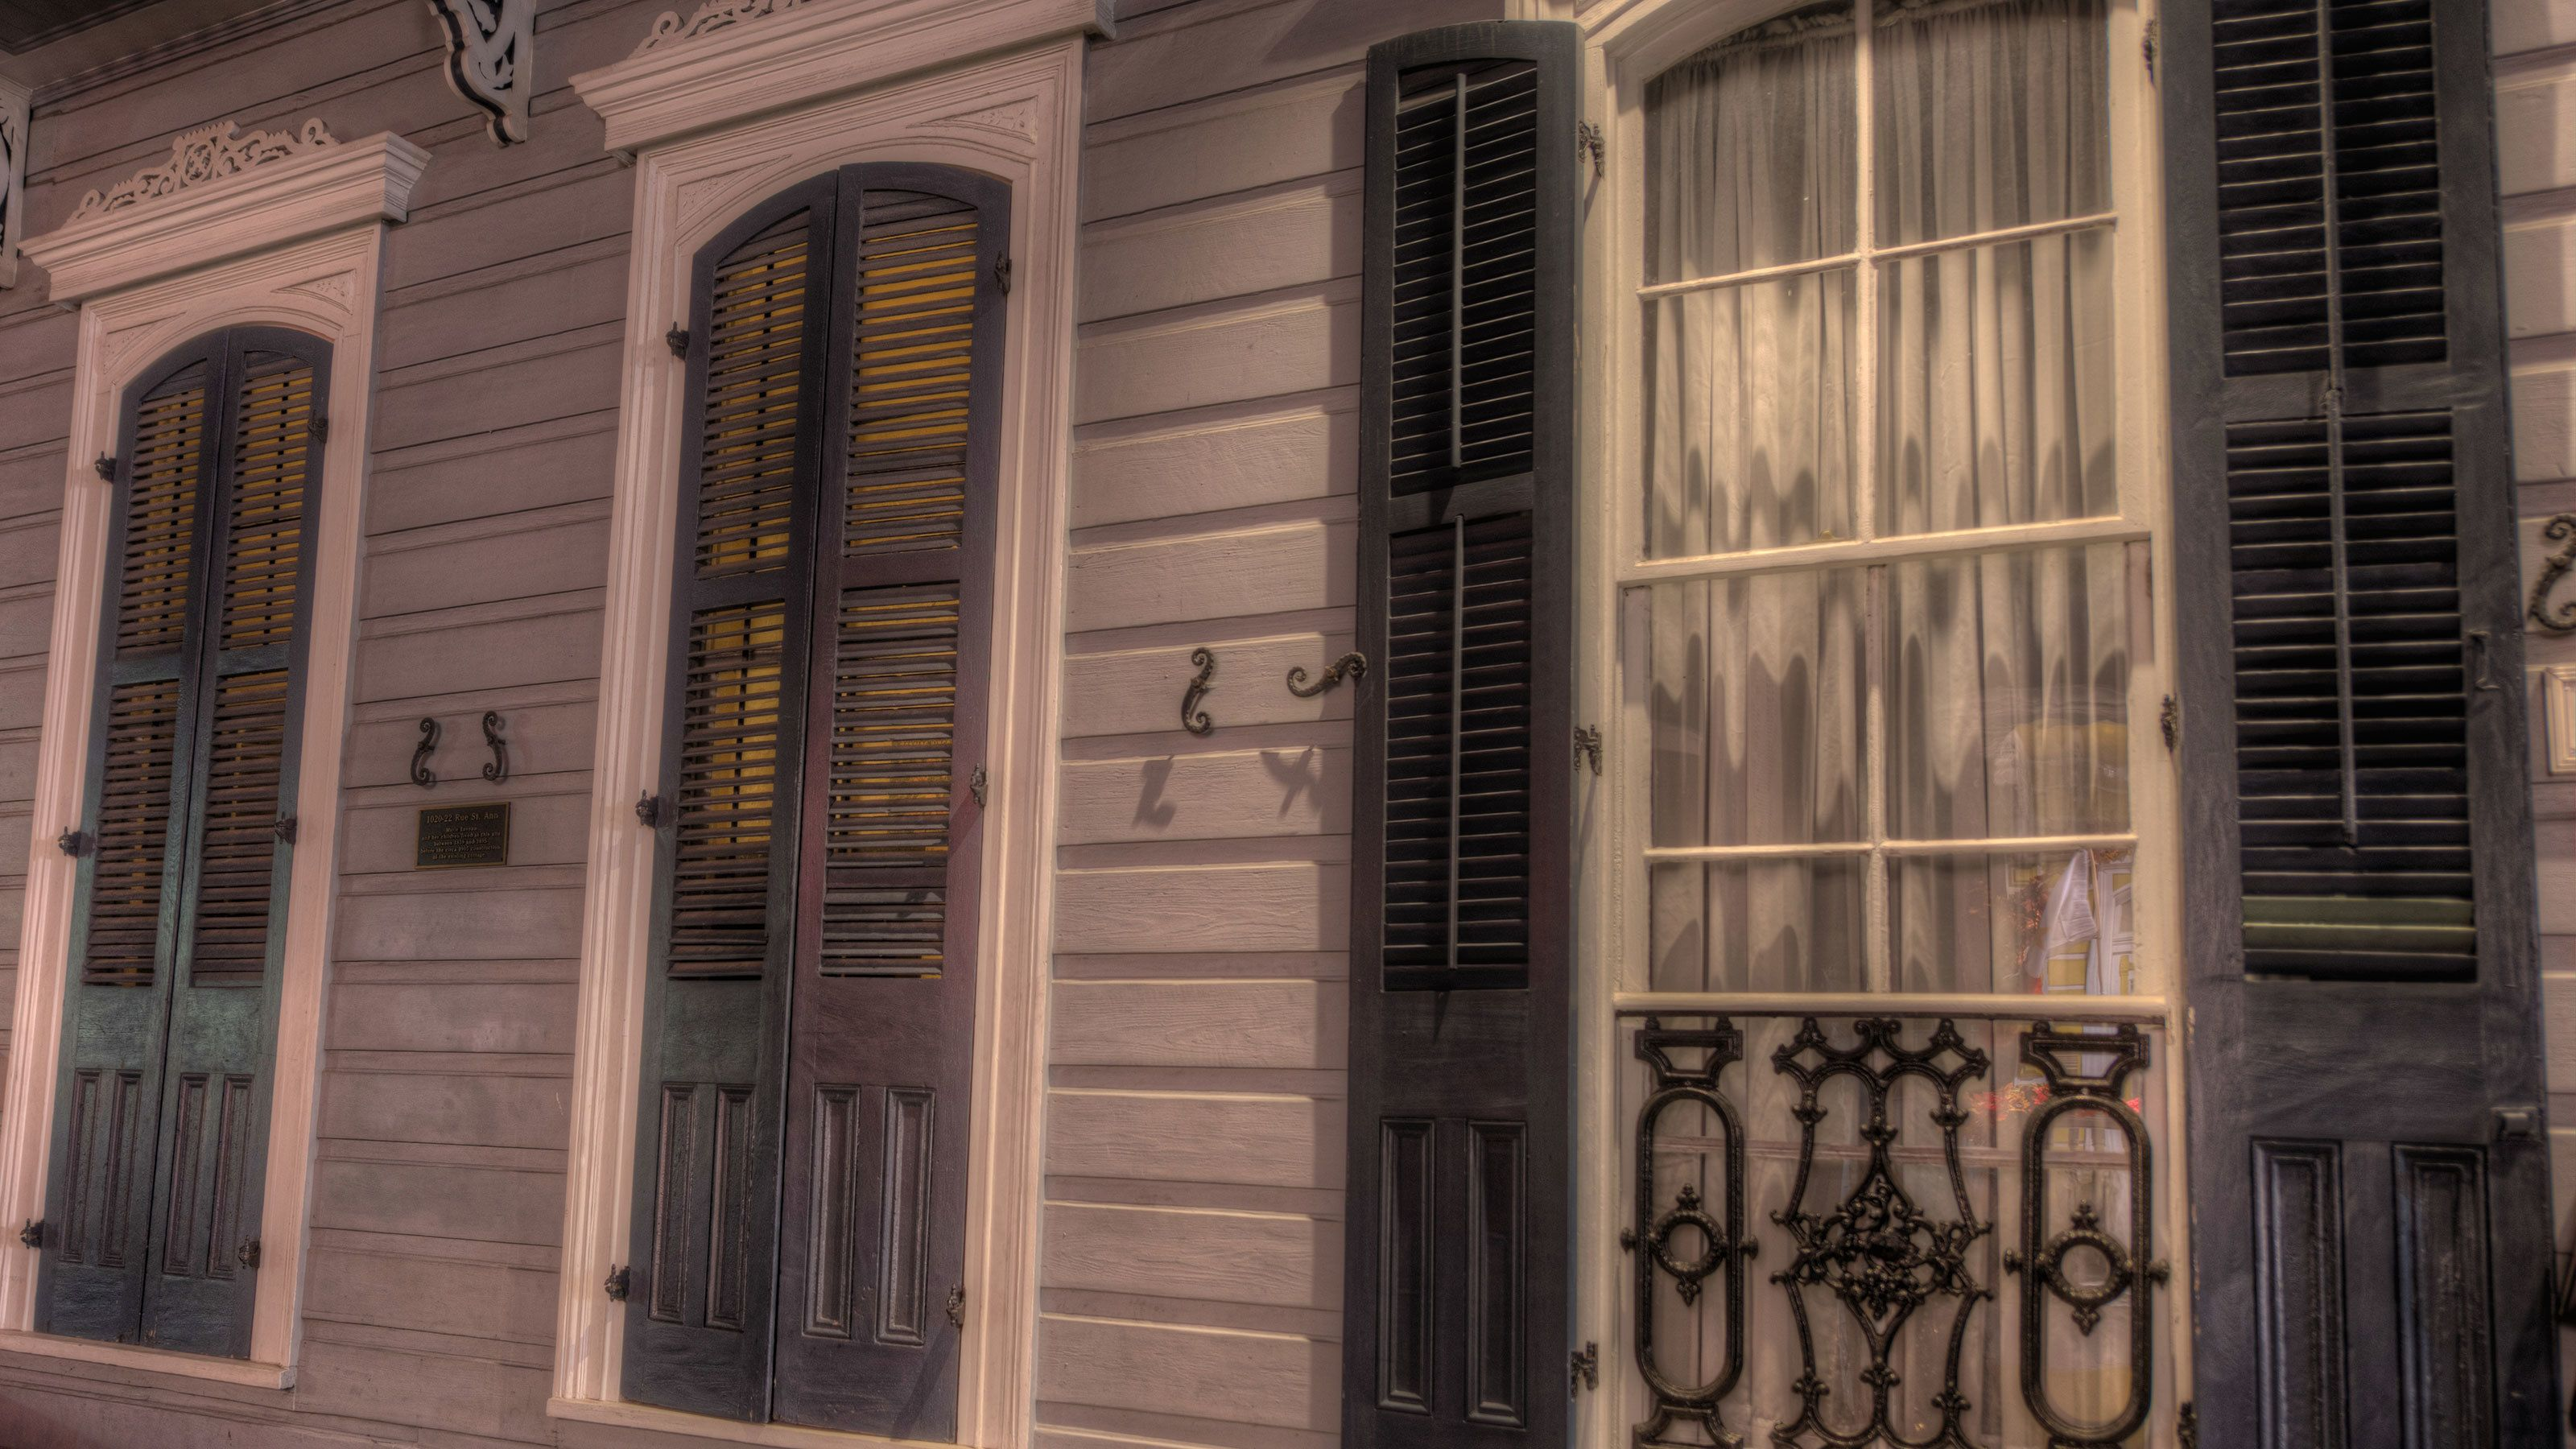 Exterior of Marie Lava's home in the French Quarter in New Orleans